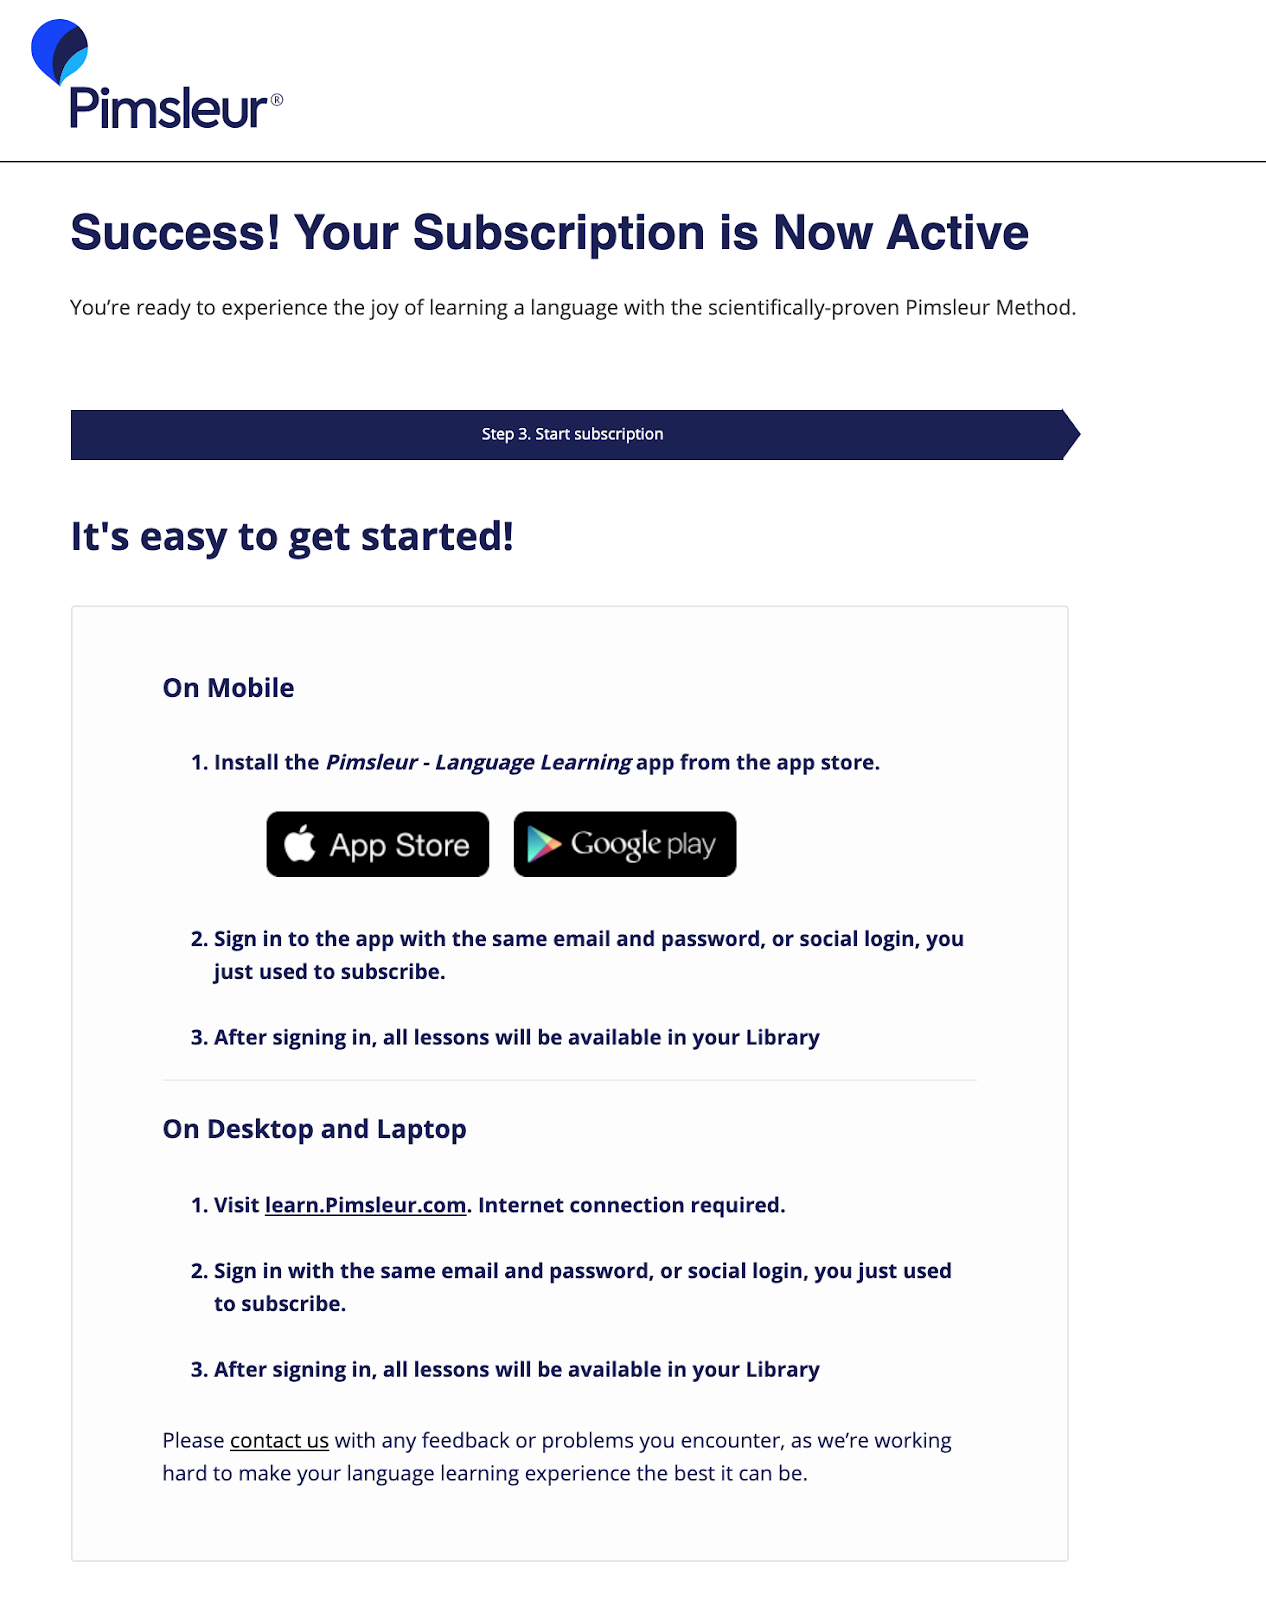 Order summary for Pimsleur Subscription